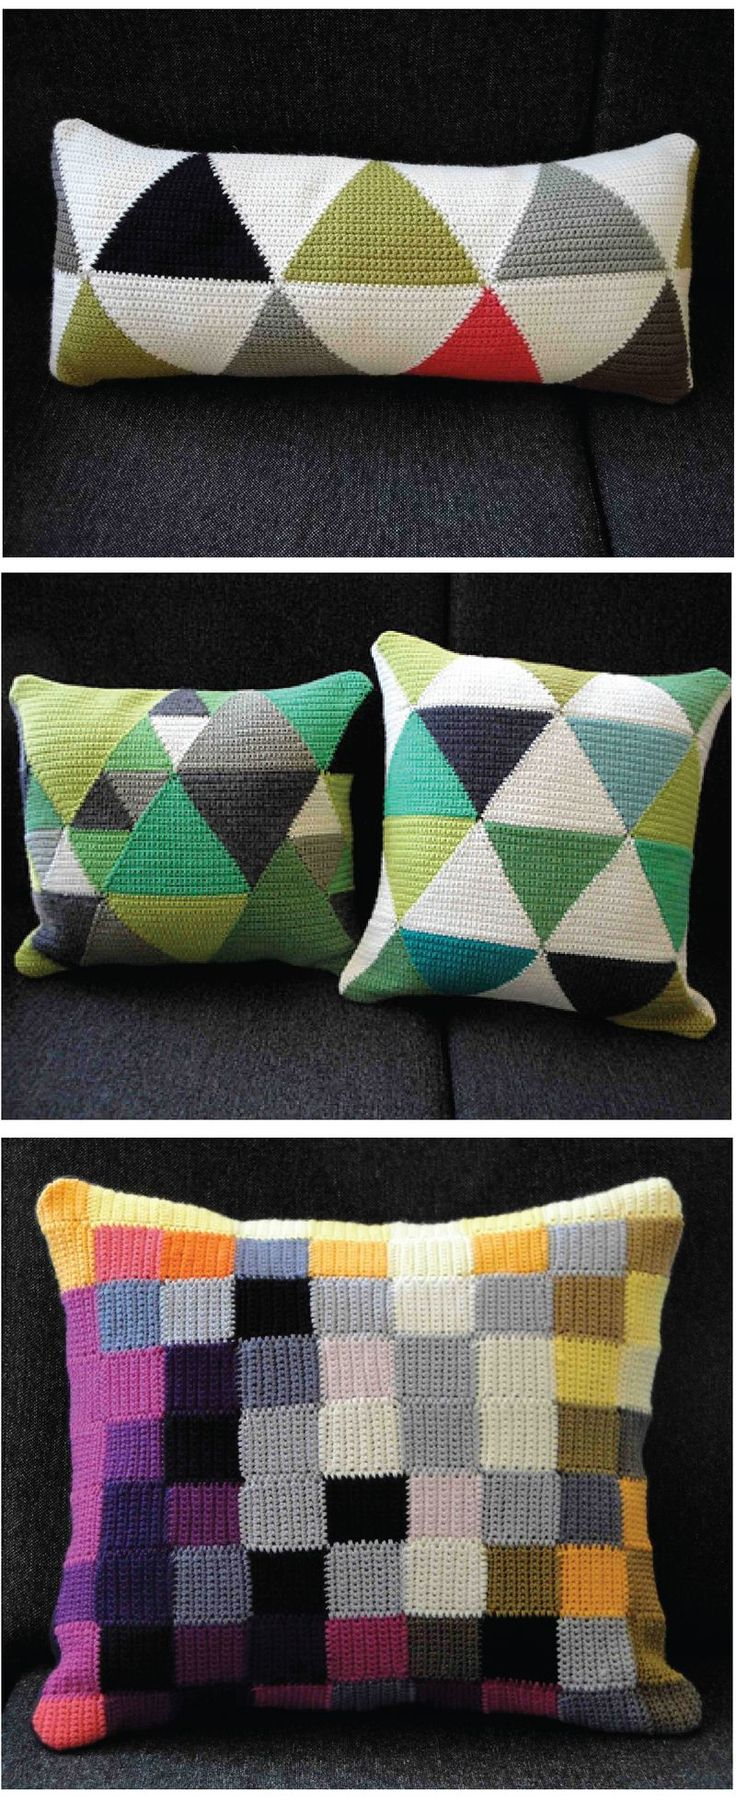 crocheted pillows